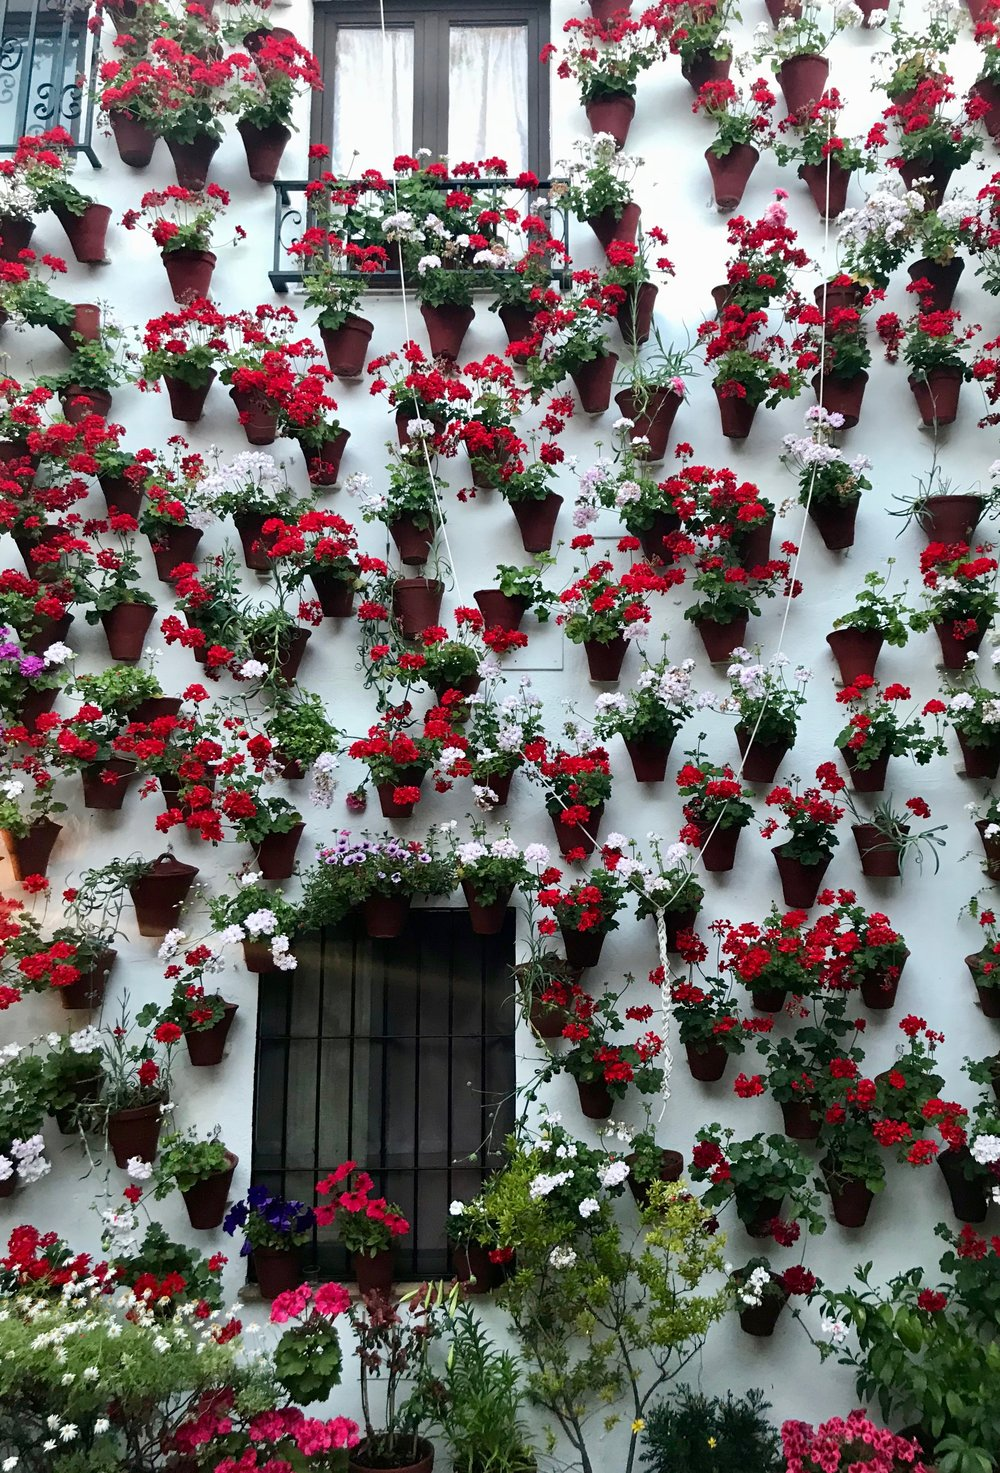 The most famous feature of Cordobés patios are the flower-covered walls (don't ask me how they water the plants).